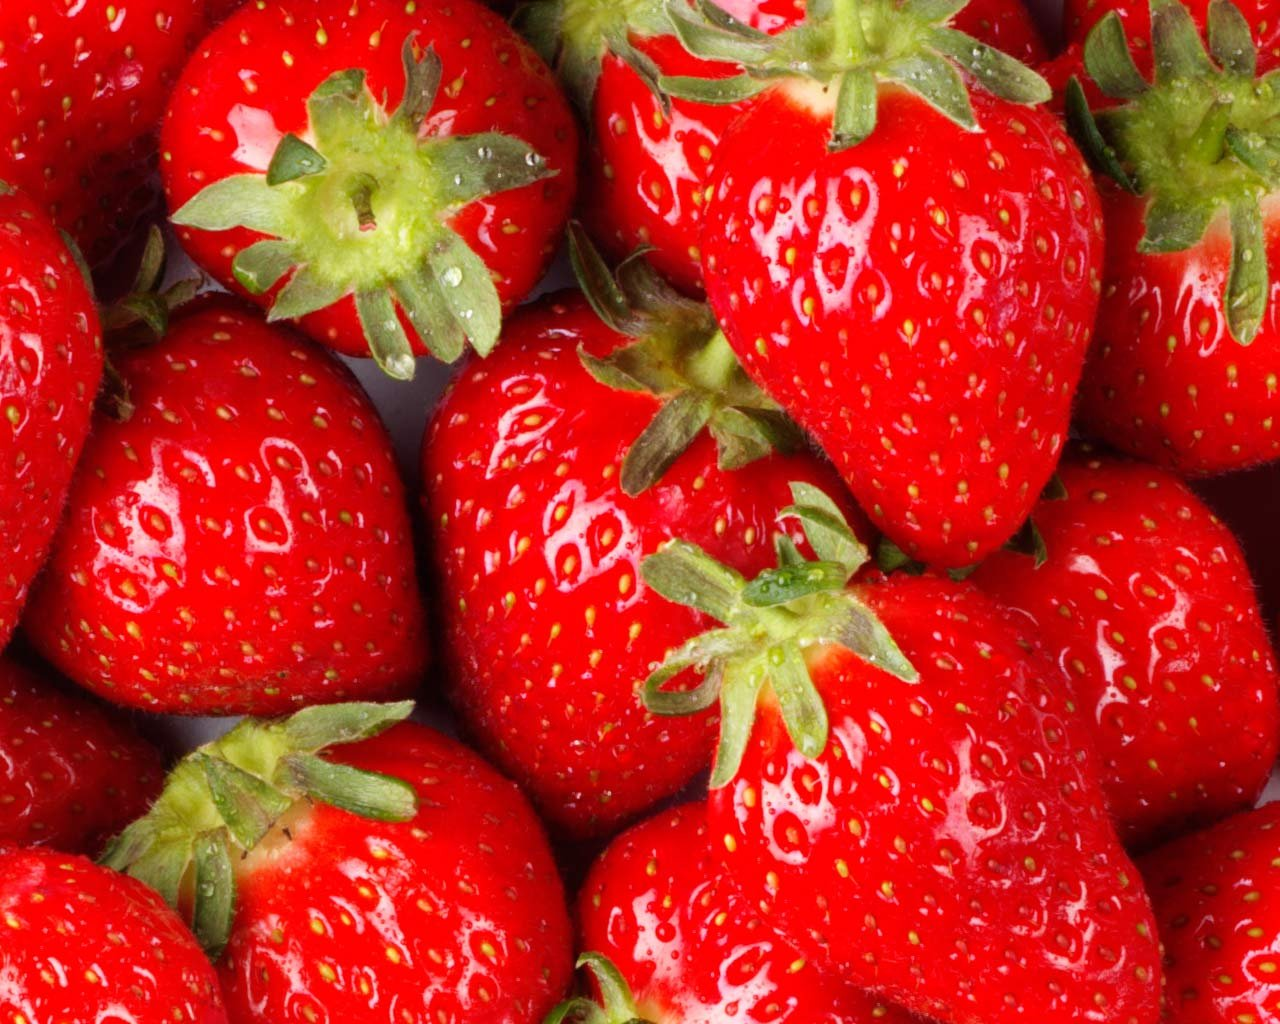 Strawberries from Florida